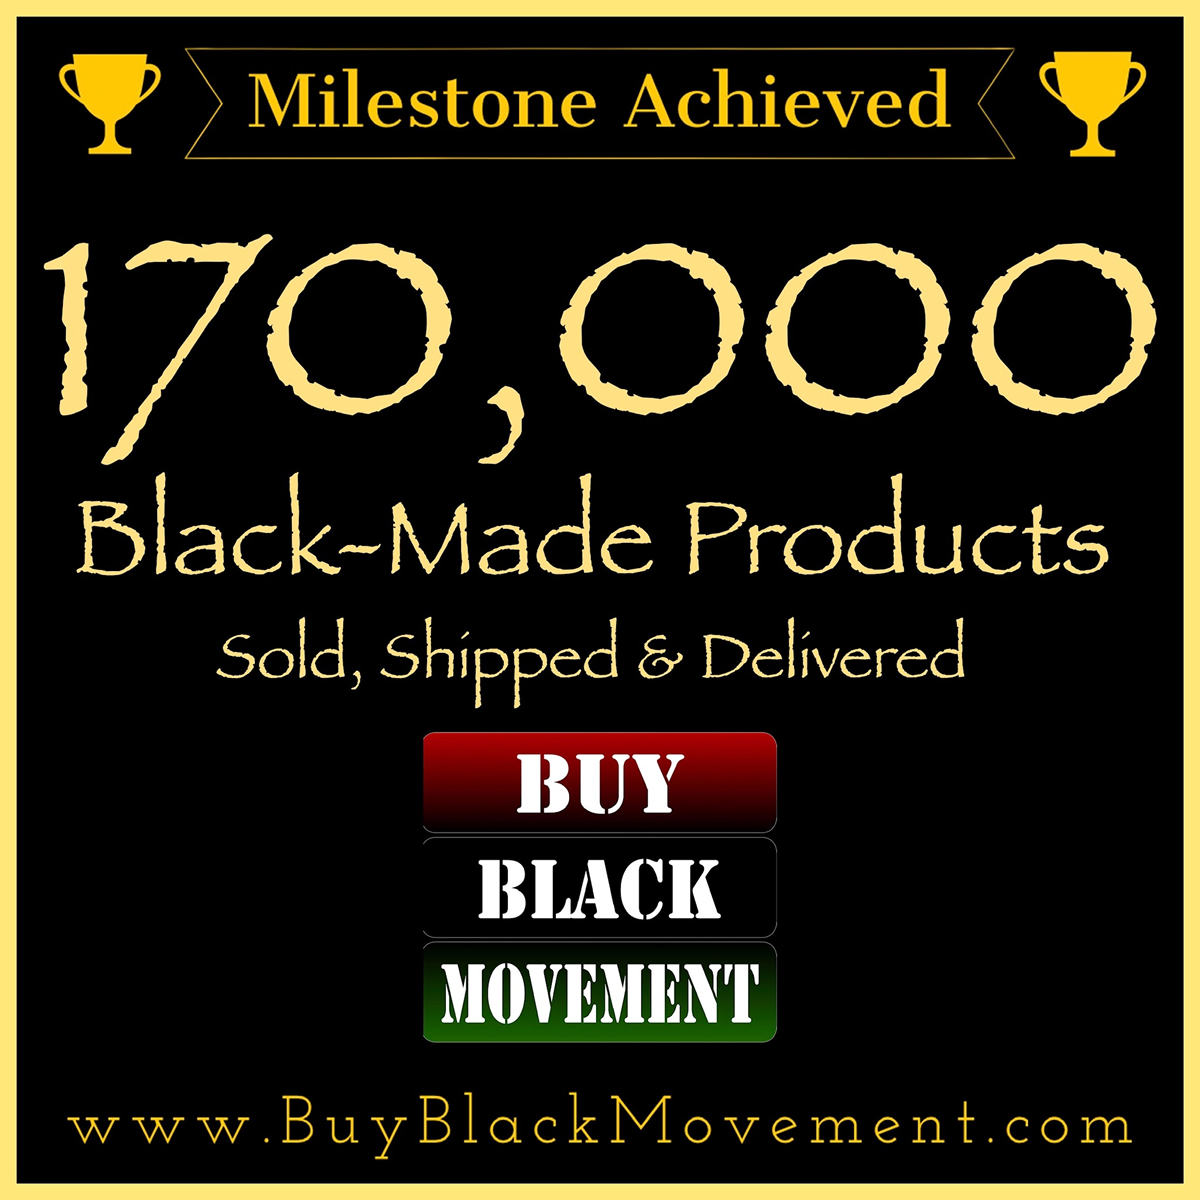 170,000 Products Sold